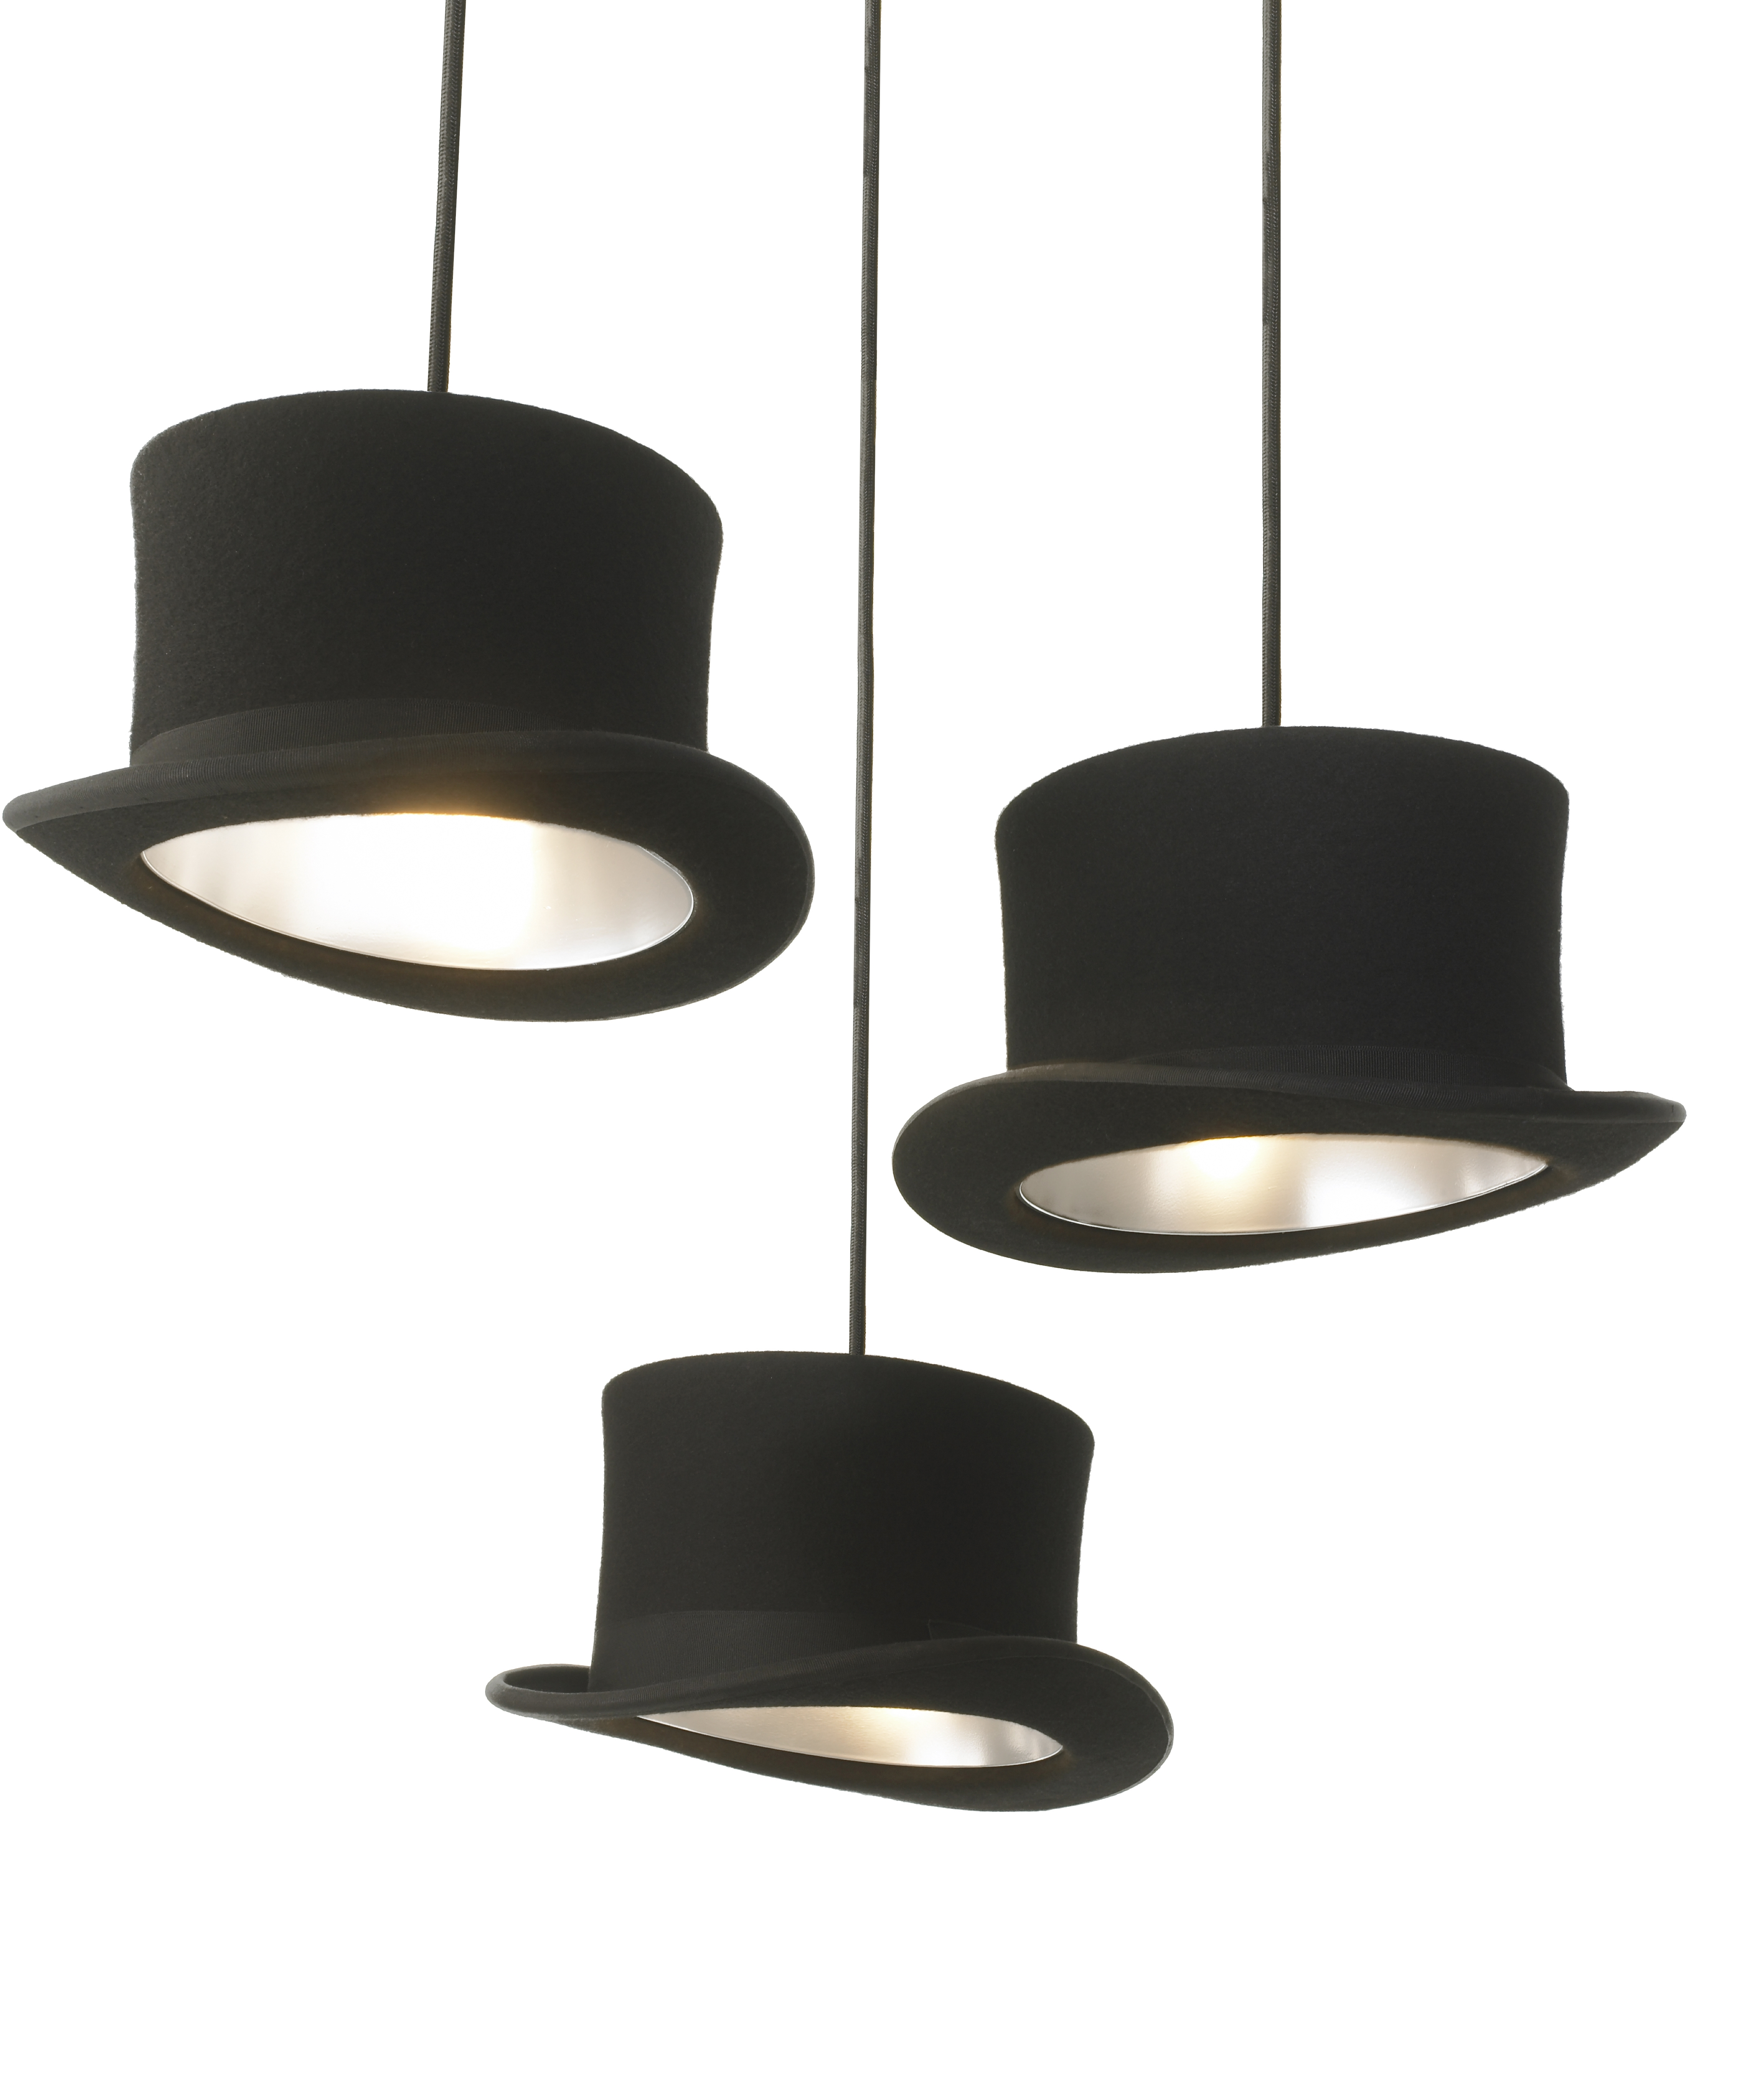 Top hat pendant light wooster top hat pendant wooster aloadofball Images